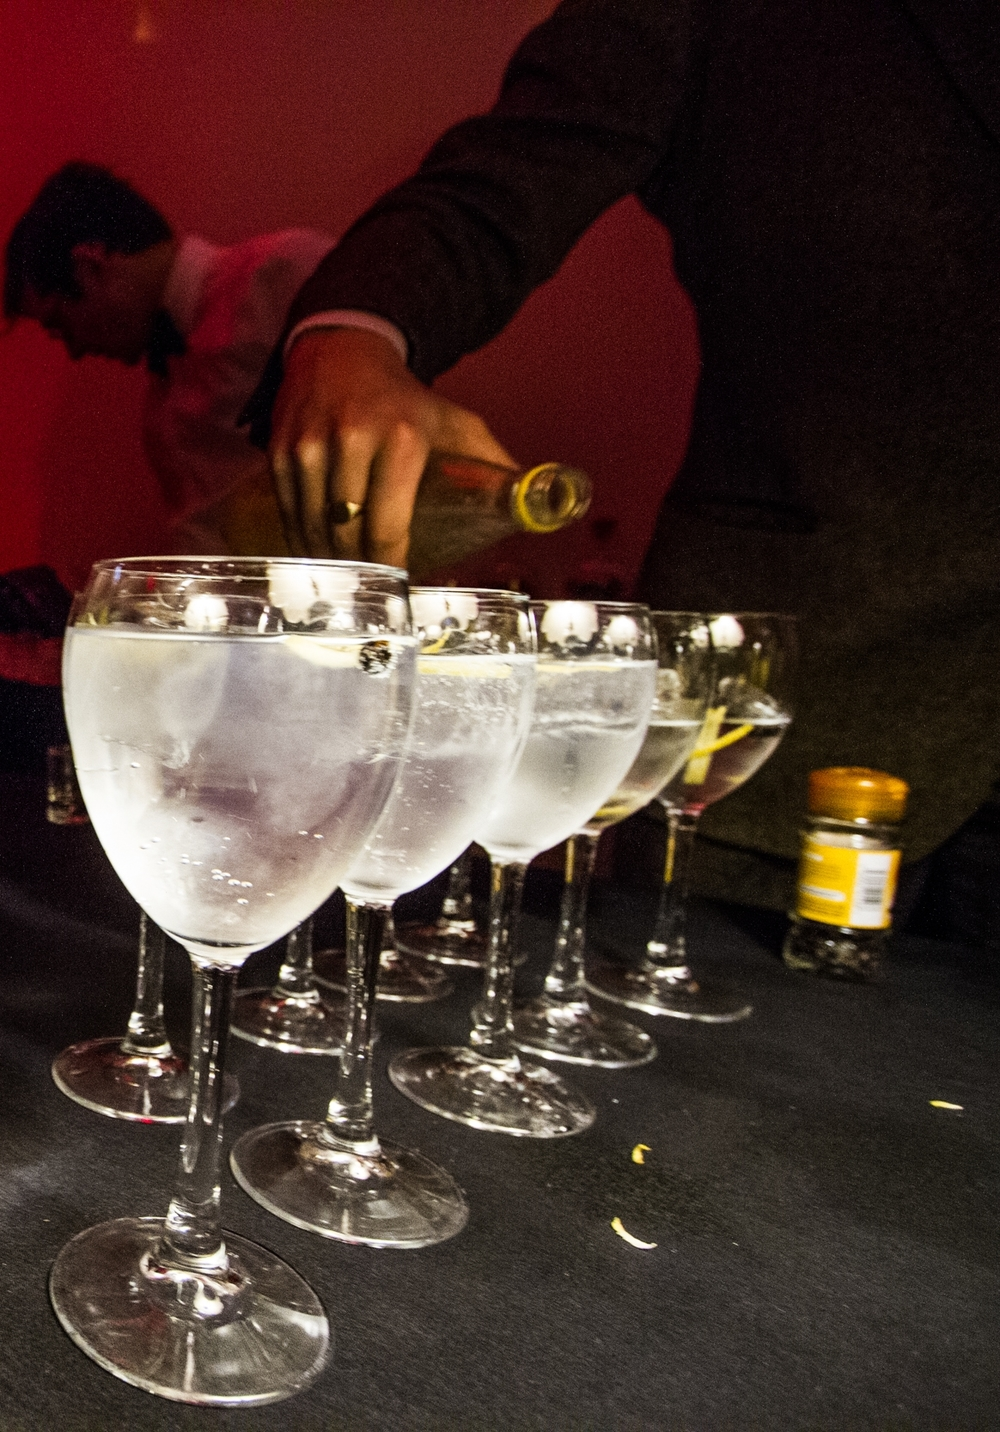 There's nothing like a gin & tonic reception to get a party started